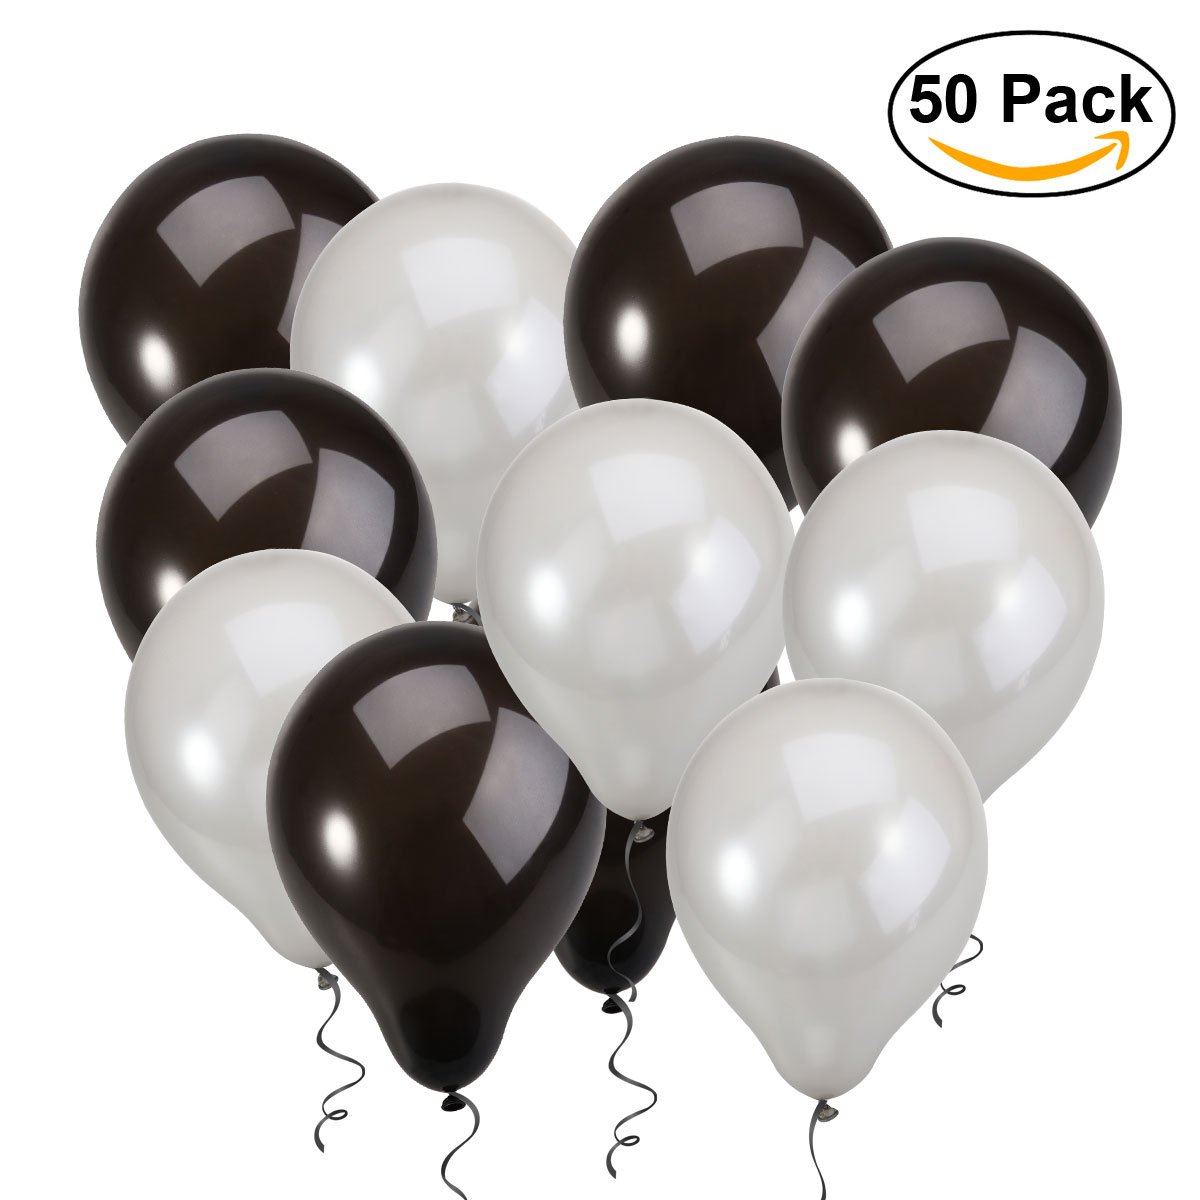 NUOLUX 50pcs Round Latex Balloons for Wedding Birthday Party 2.8g Black Silver Balloons Toy for Kids